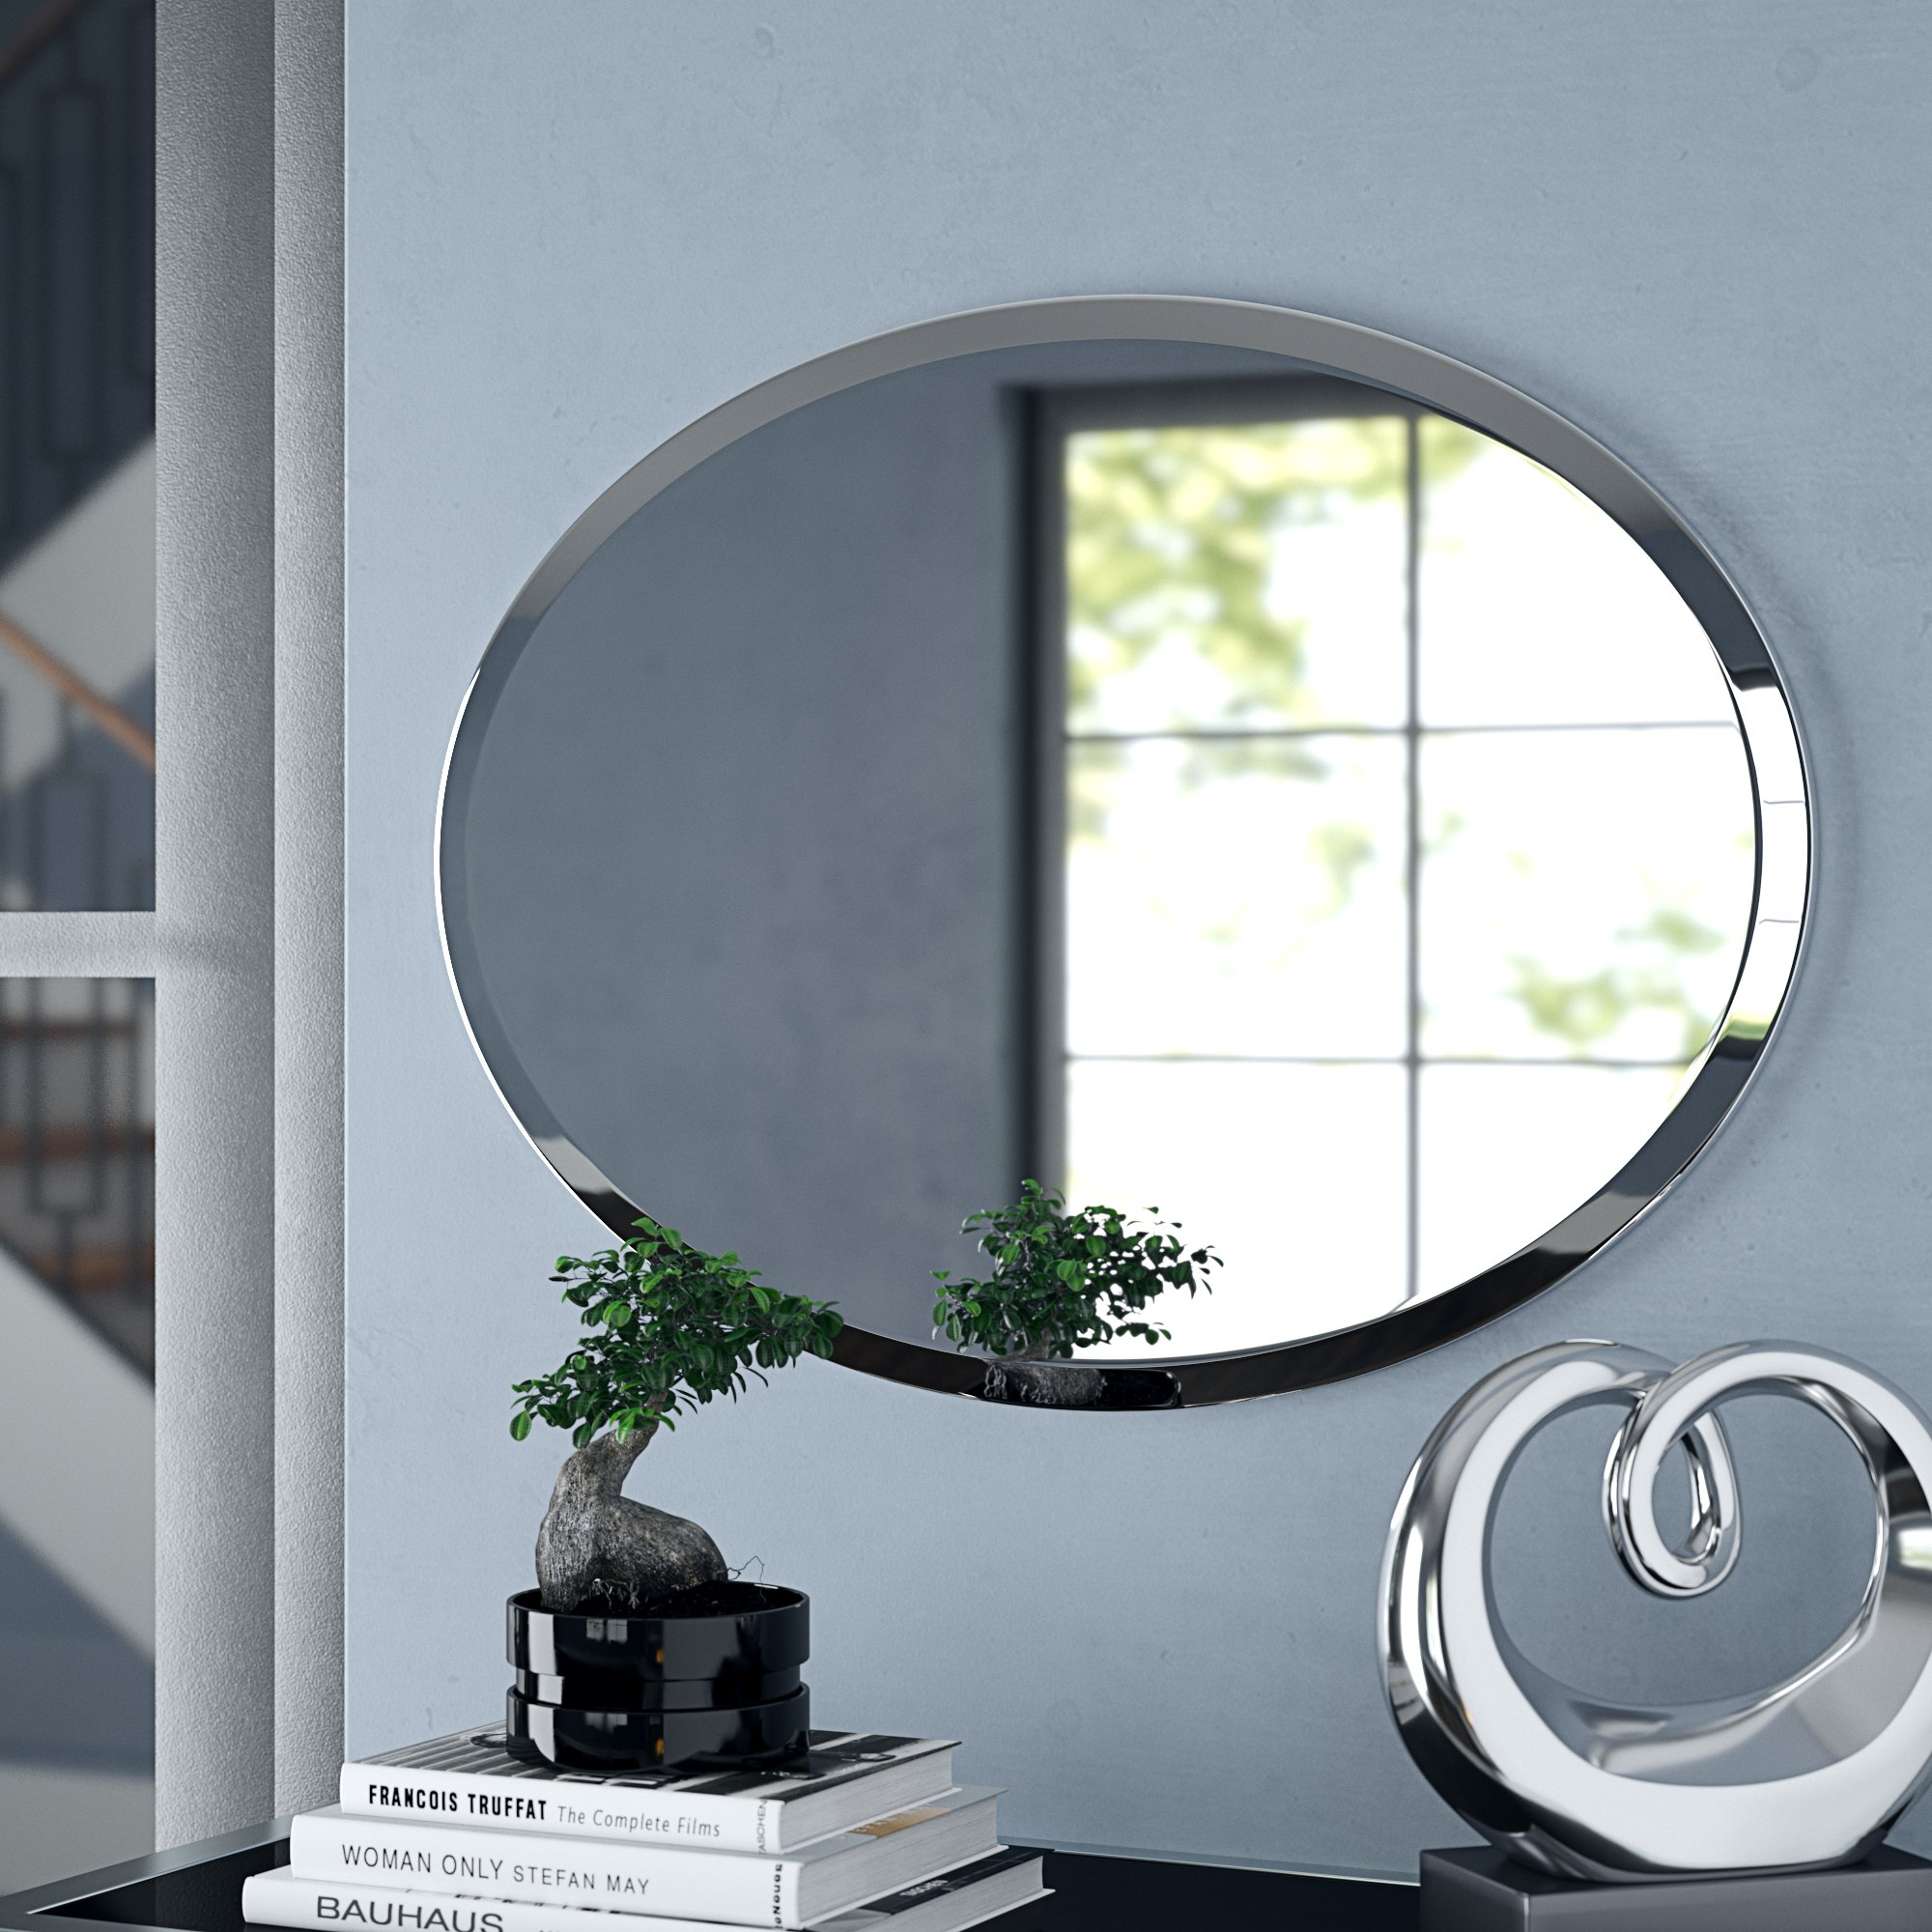 Orren Ellis Provenzano Frameless Beveled Oval Wall Mirror Intended For Thornbury Oval Bevel Frameless Wall Mirrors (View 8 of 20)